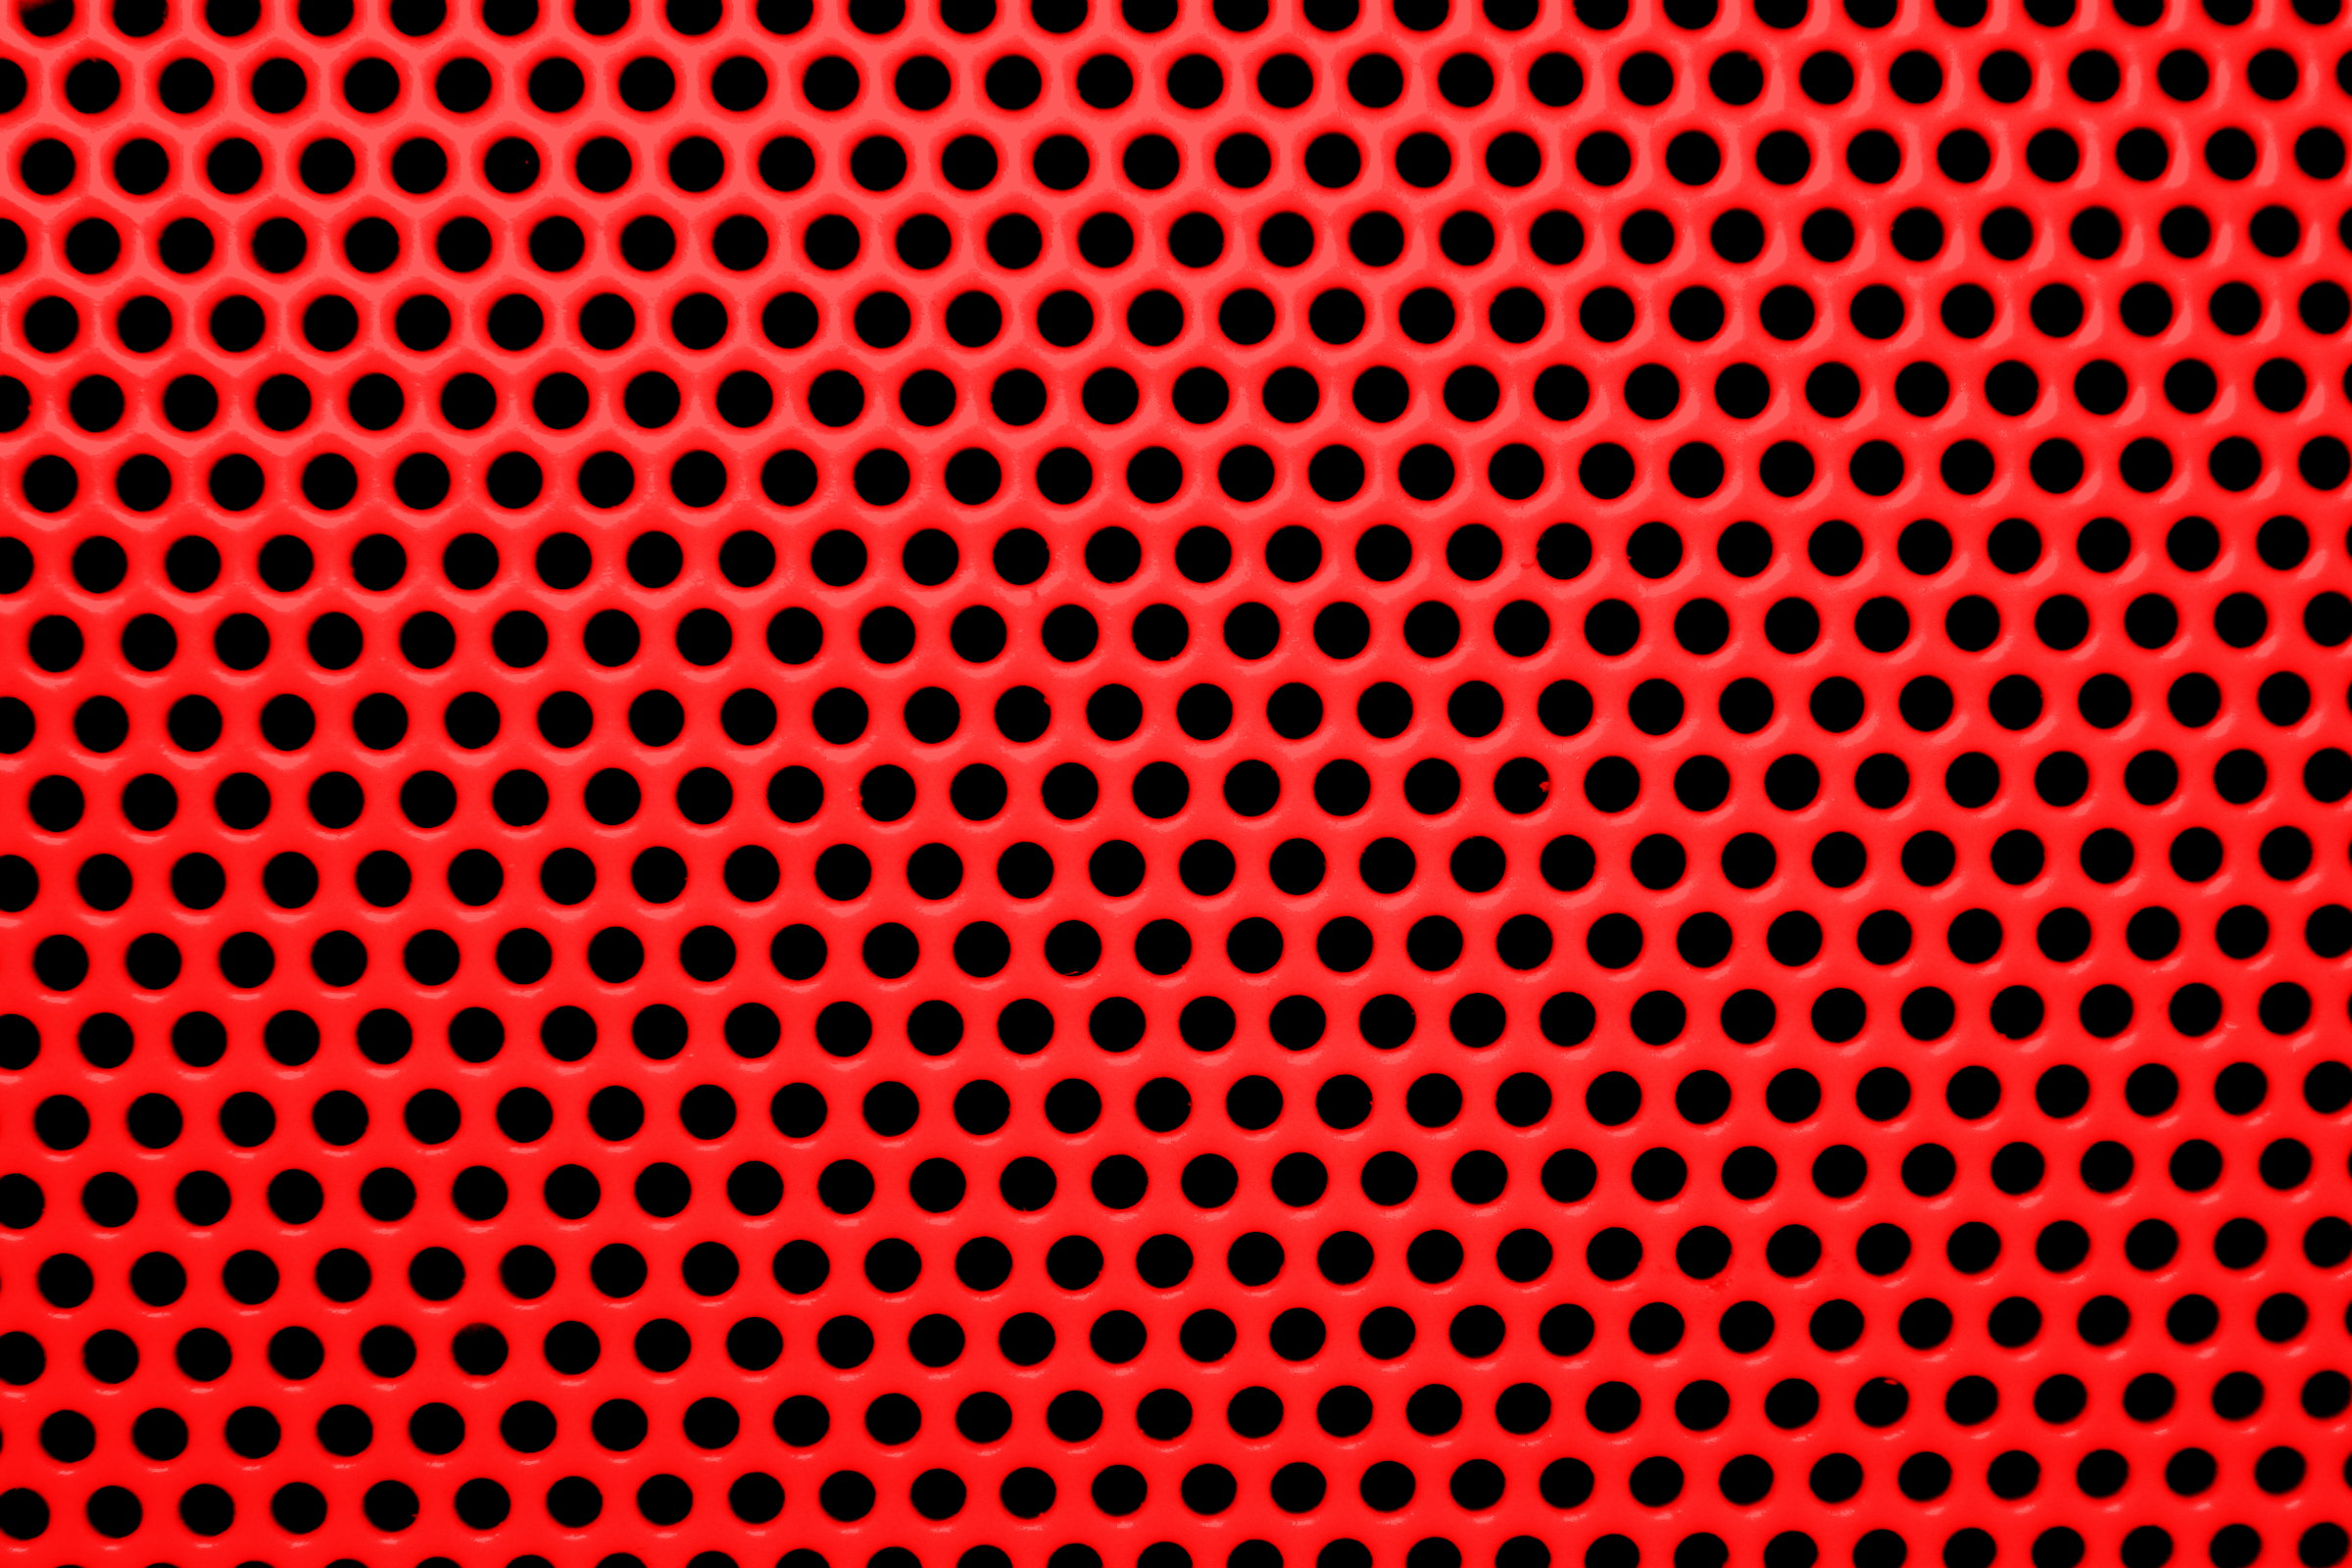 Bright Red Mesh With Round Holes Texture Picture Free